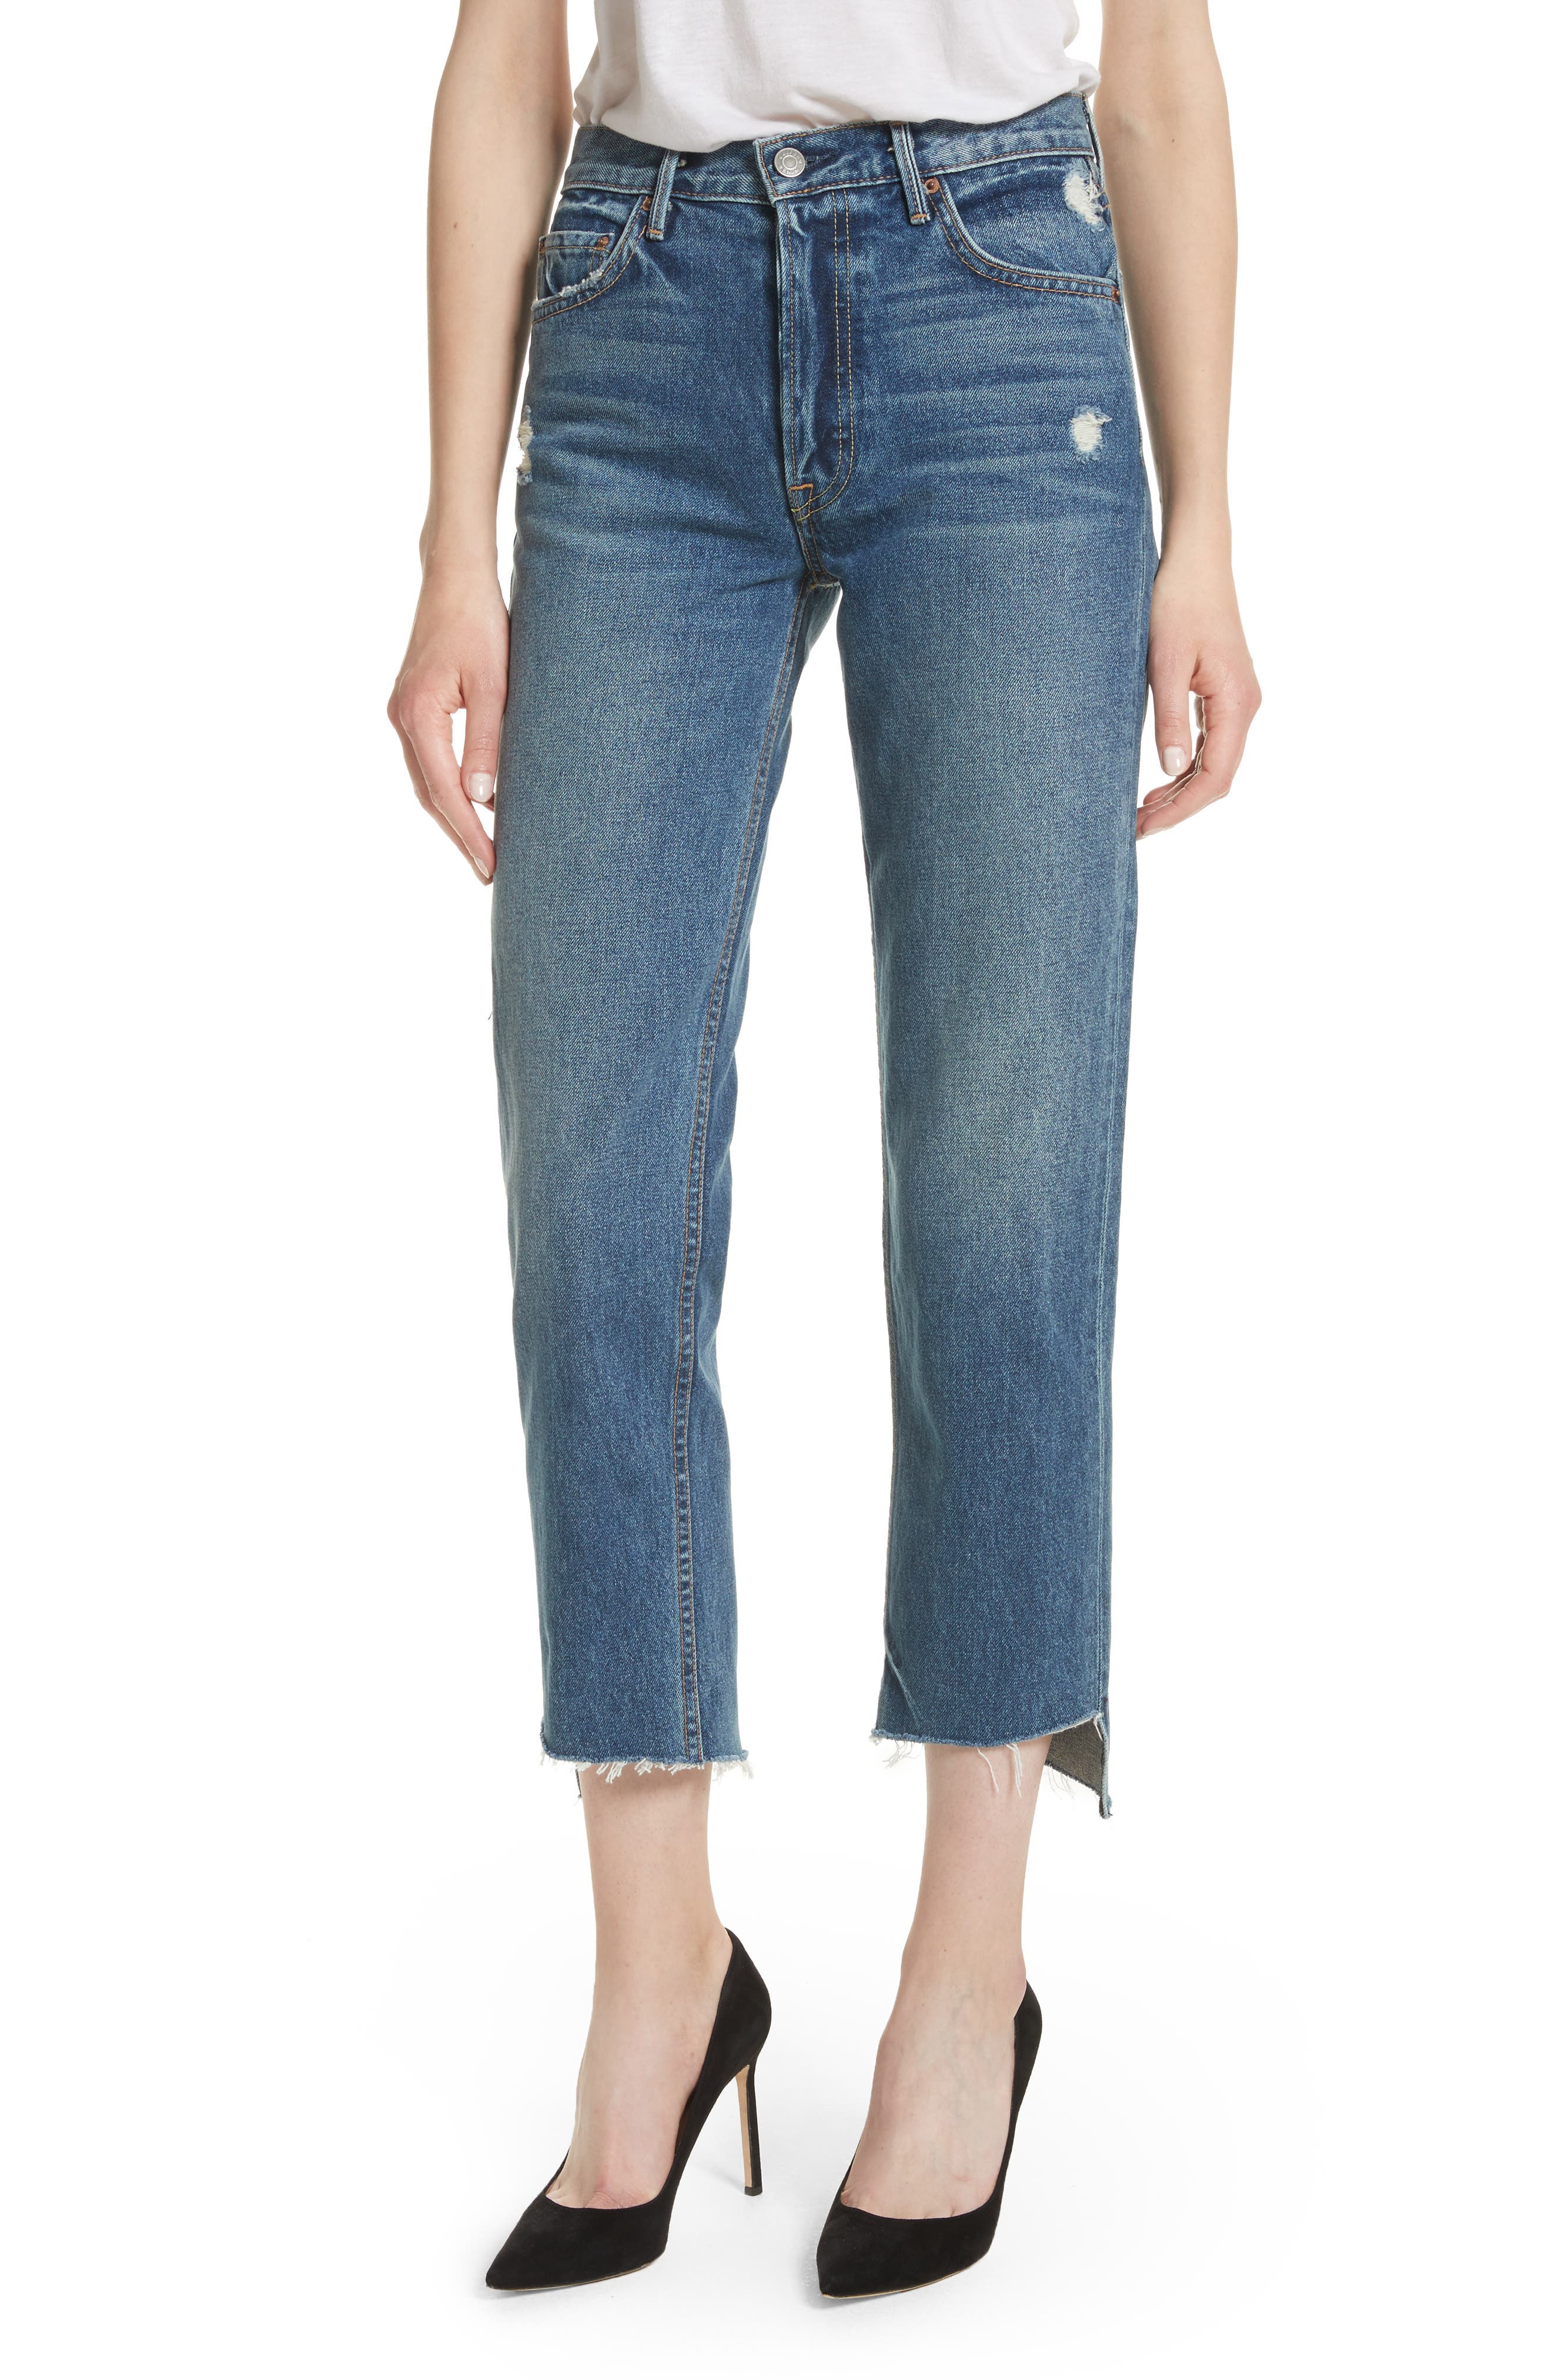 Helena Rigid High Waist Straight Jeans,                         Main,                         color, CLOSE TO YOU